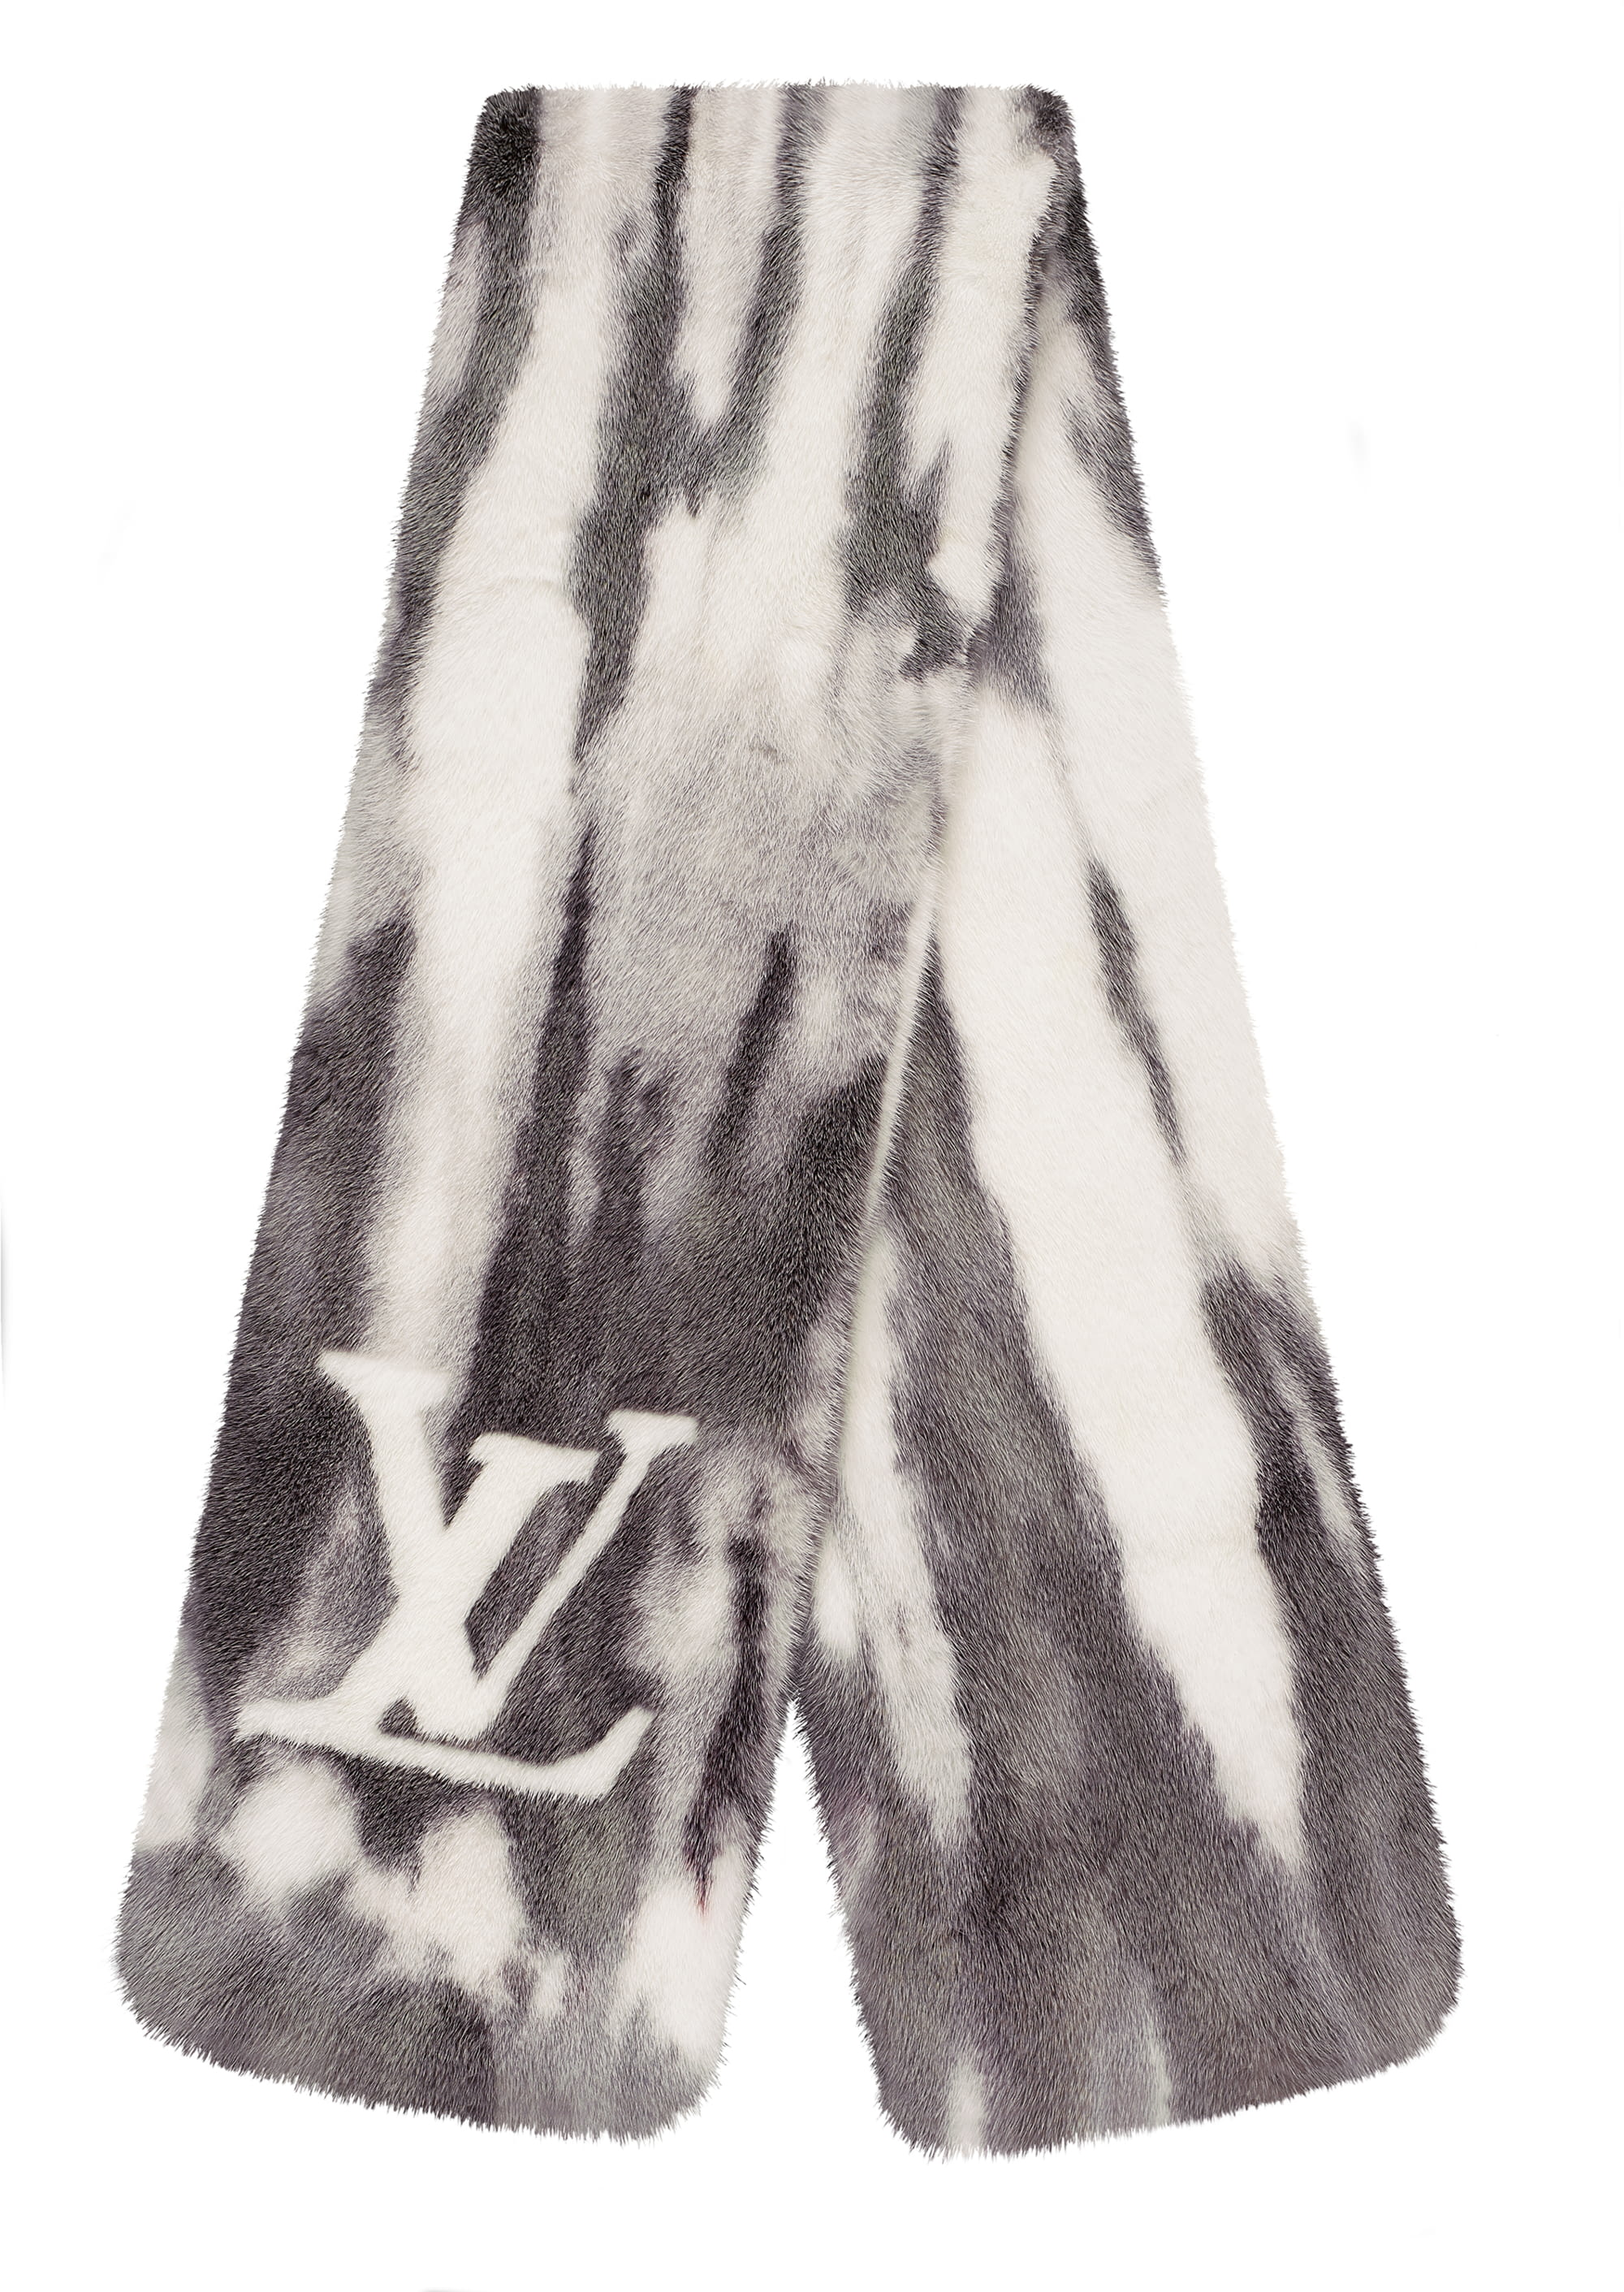 Mens Casual Tied and Dyed Tie Dye Graffiti 3D Print Graphic Medium Length Summer Drawstring Beach Shorts Surfing Trunks Pants